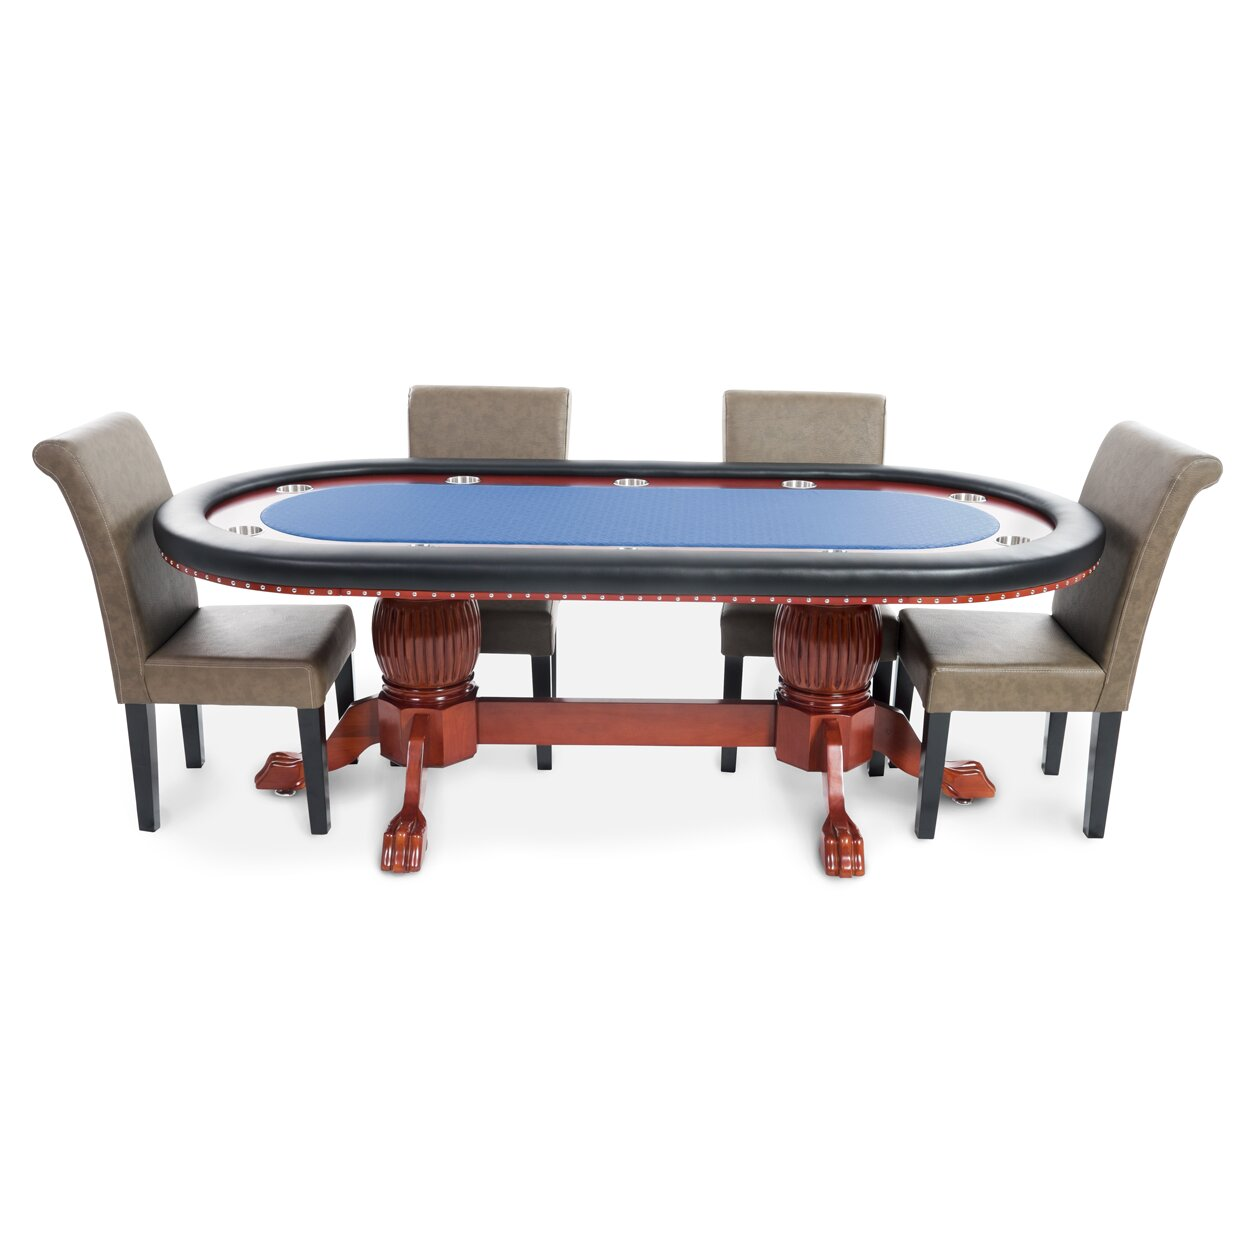 bbo poker rockwell  piece poker dining table set with lounge, Dining tables